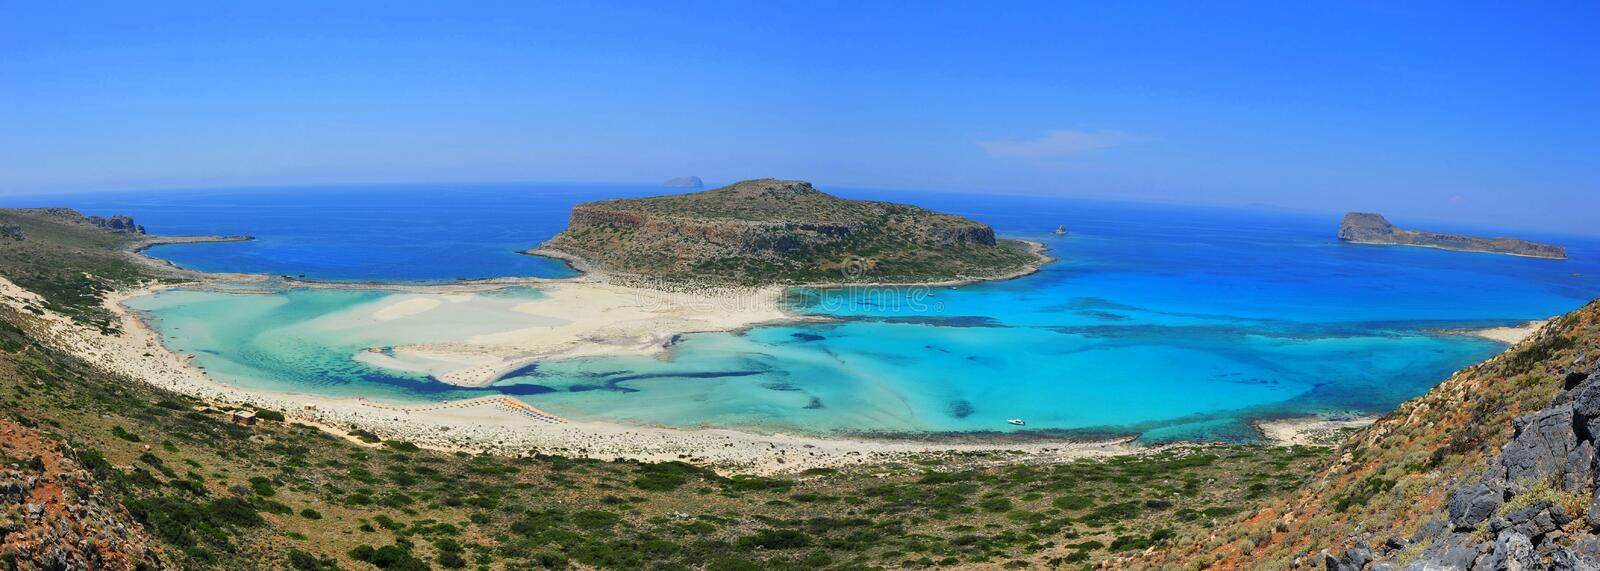 Panoramic landscape of Balos bay - Crete, Greece. Amazing panoramic view over Balos bay, Gramvousa (Crete, Greece stock photos